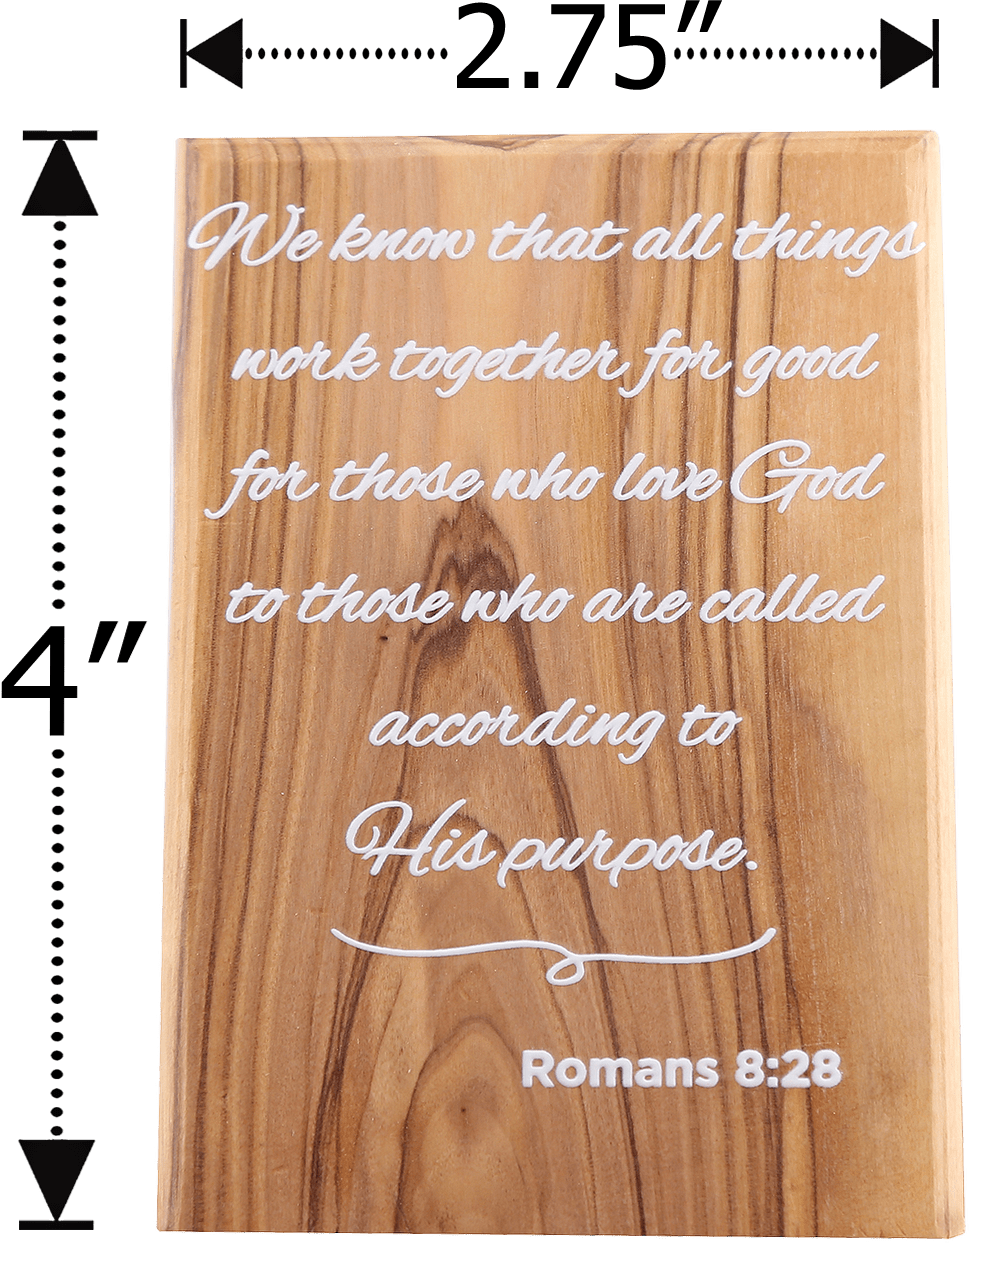 Olive Wood Plaque with White Print #6, Romans 8:28 dimensions